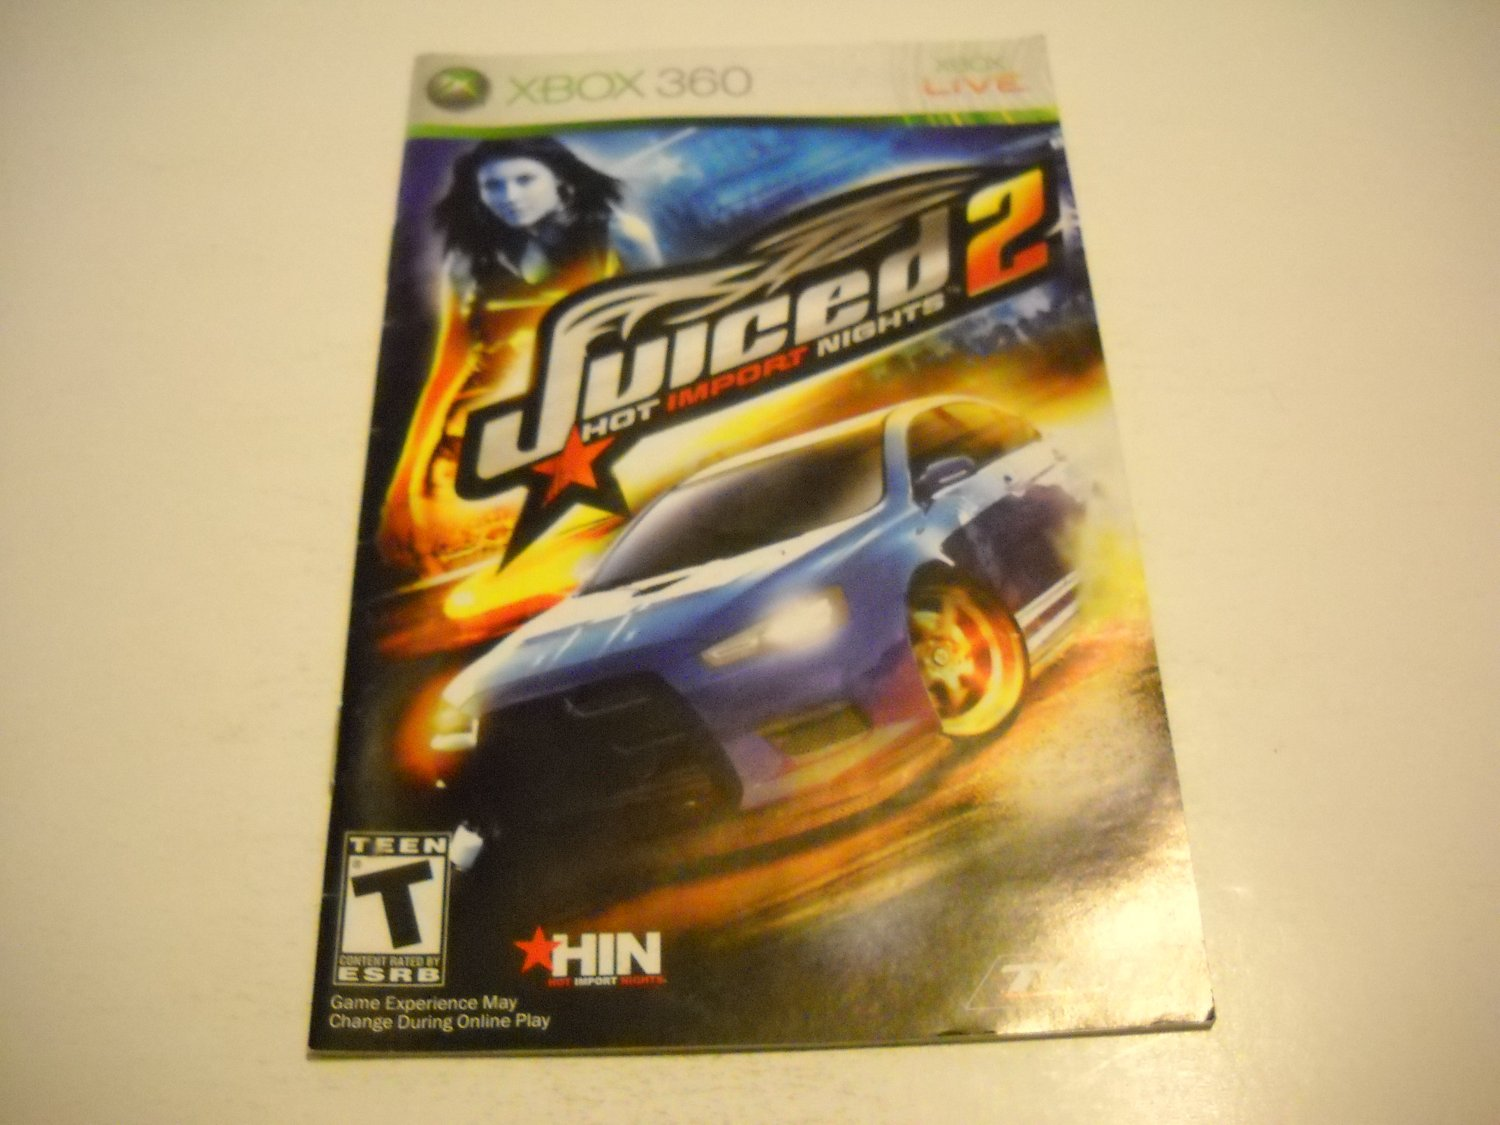 Manual ONLY ~  for Juiced 2 Hot Import Nights   - Xbox 360 Instruction Booklet